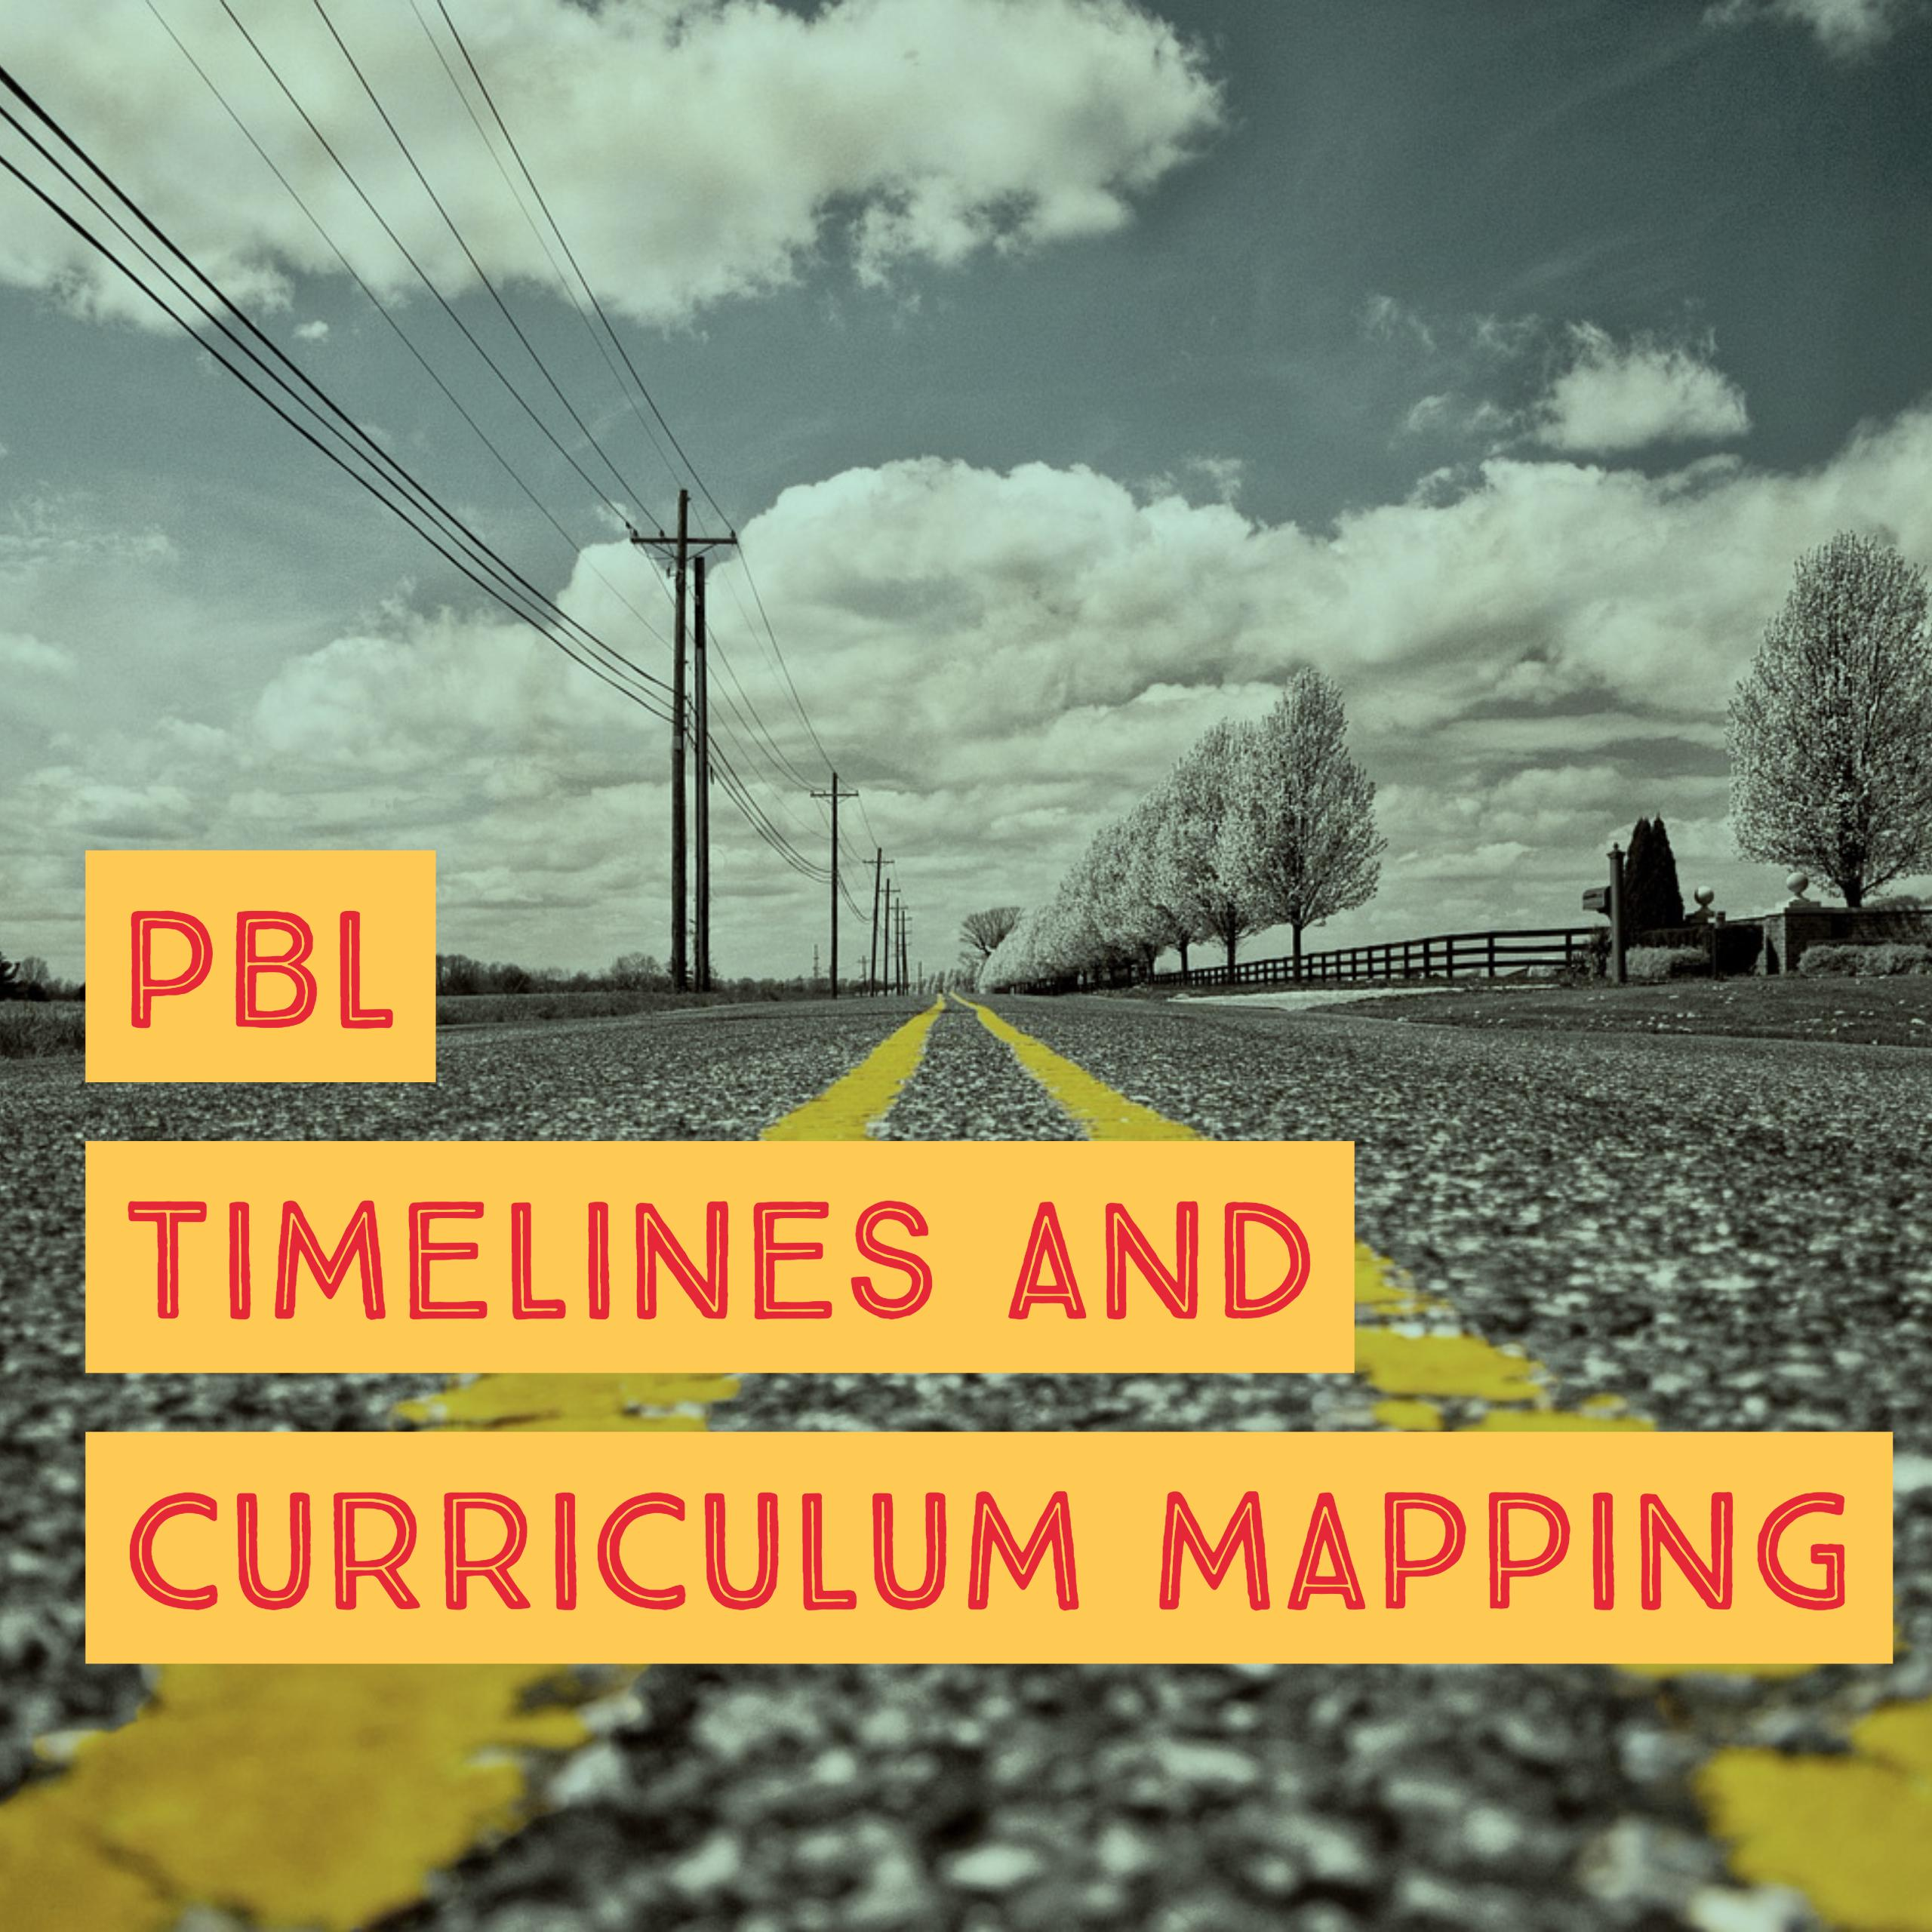 PBL: Navigating Timelines and Curriculum Maps